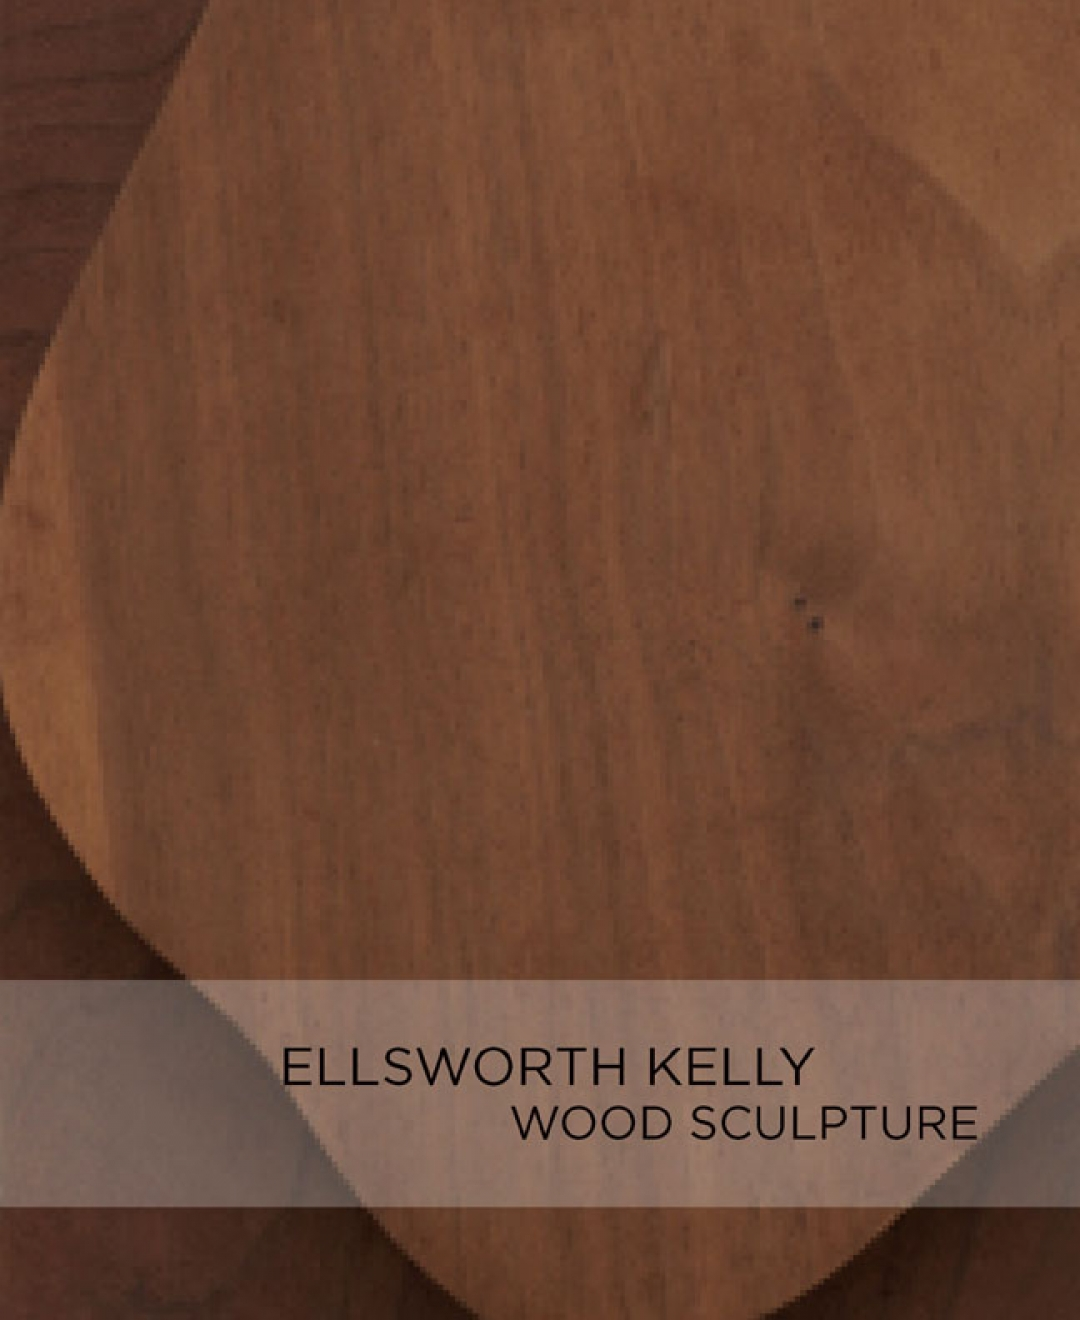 Ellsworth Kelly Wood Sculpture